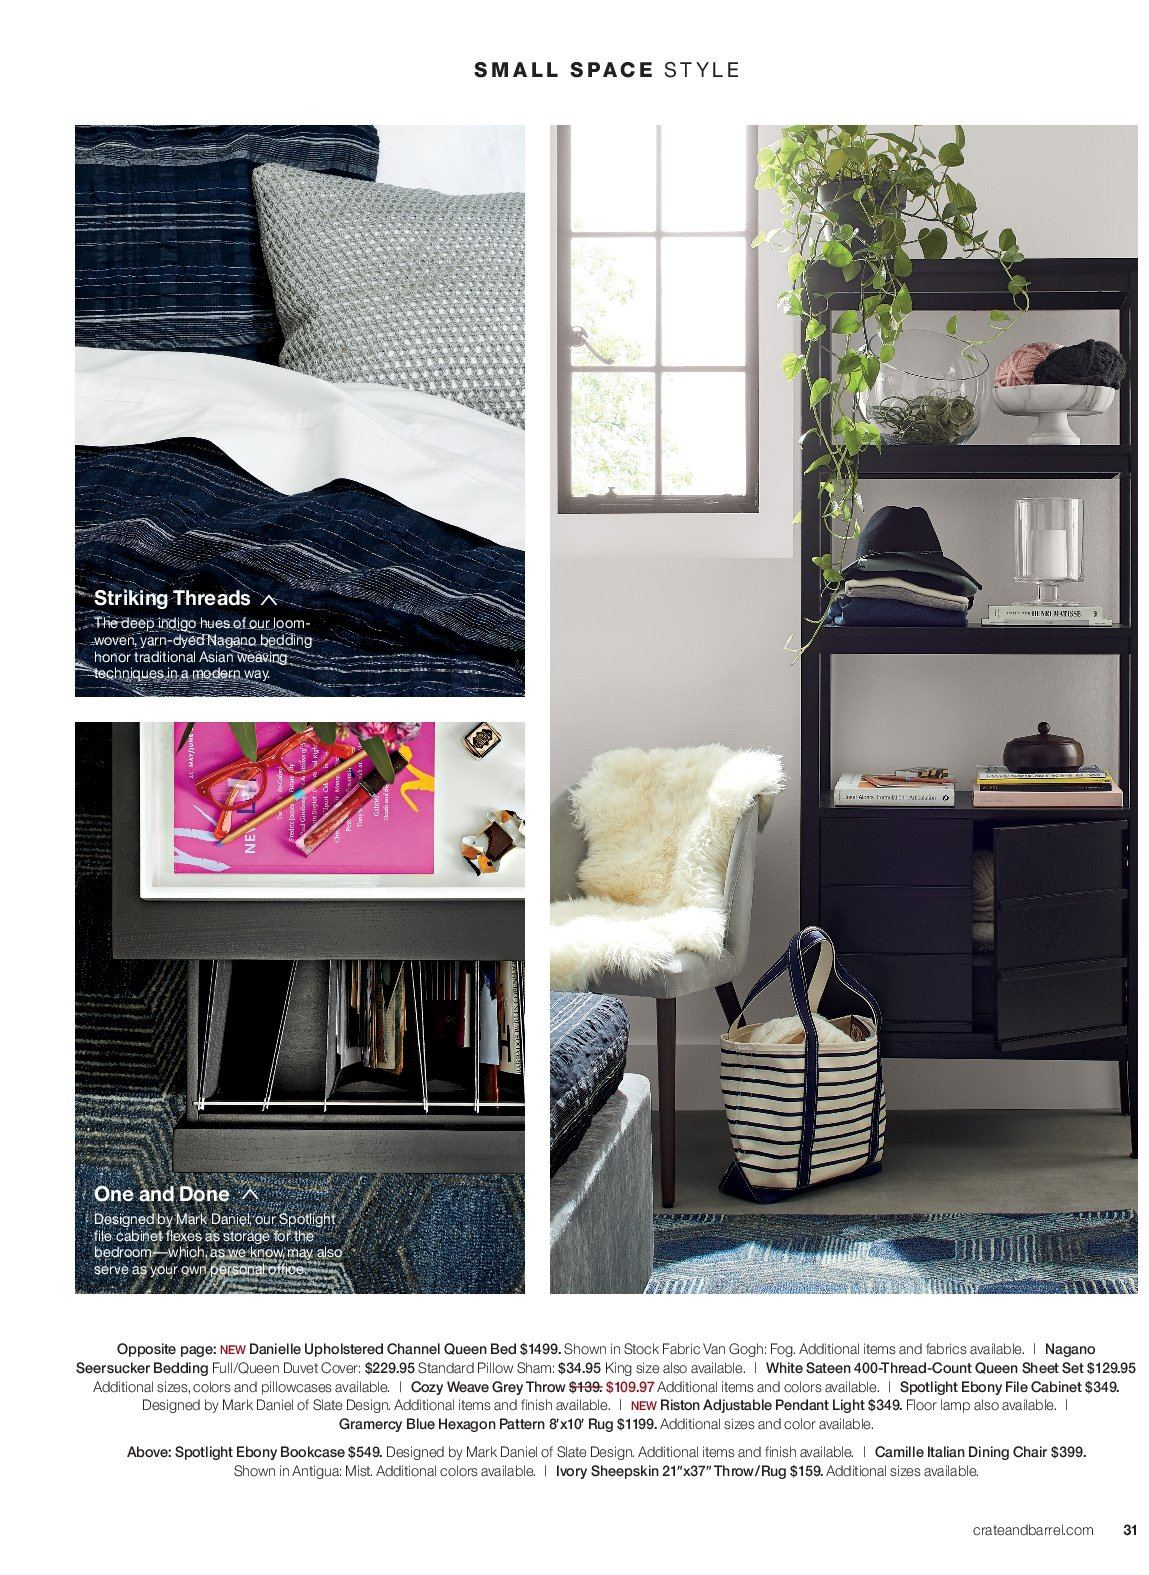 Crate & Barrel Flyer - 03.01.2019 - 03.31.2019 - Sales products - bed, bedding, bookcase, cabinet, duvet, duvet cover, lamp, rug, sateen, sham, sheet, sheet set, spotlight, throw, chair, channel, pillow, pillowcases, queen bed, pendant, thread. Page 31.